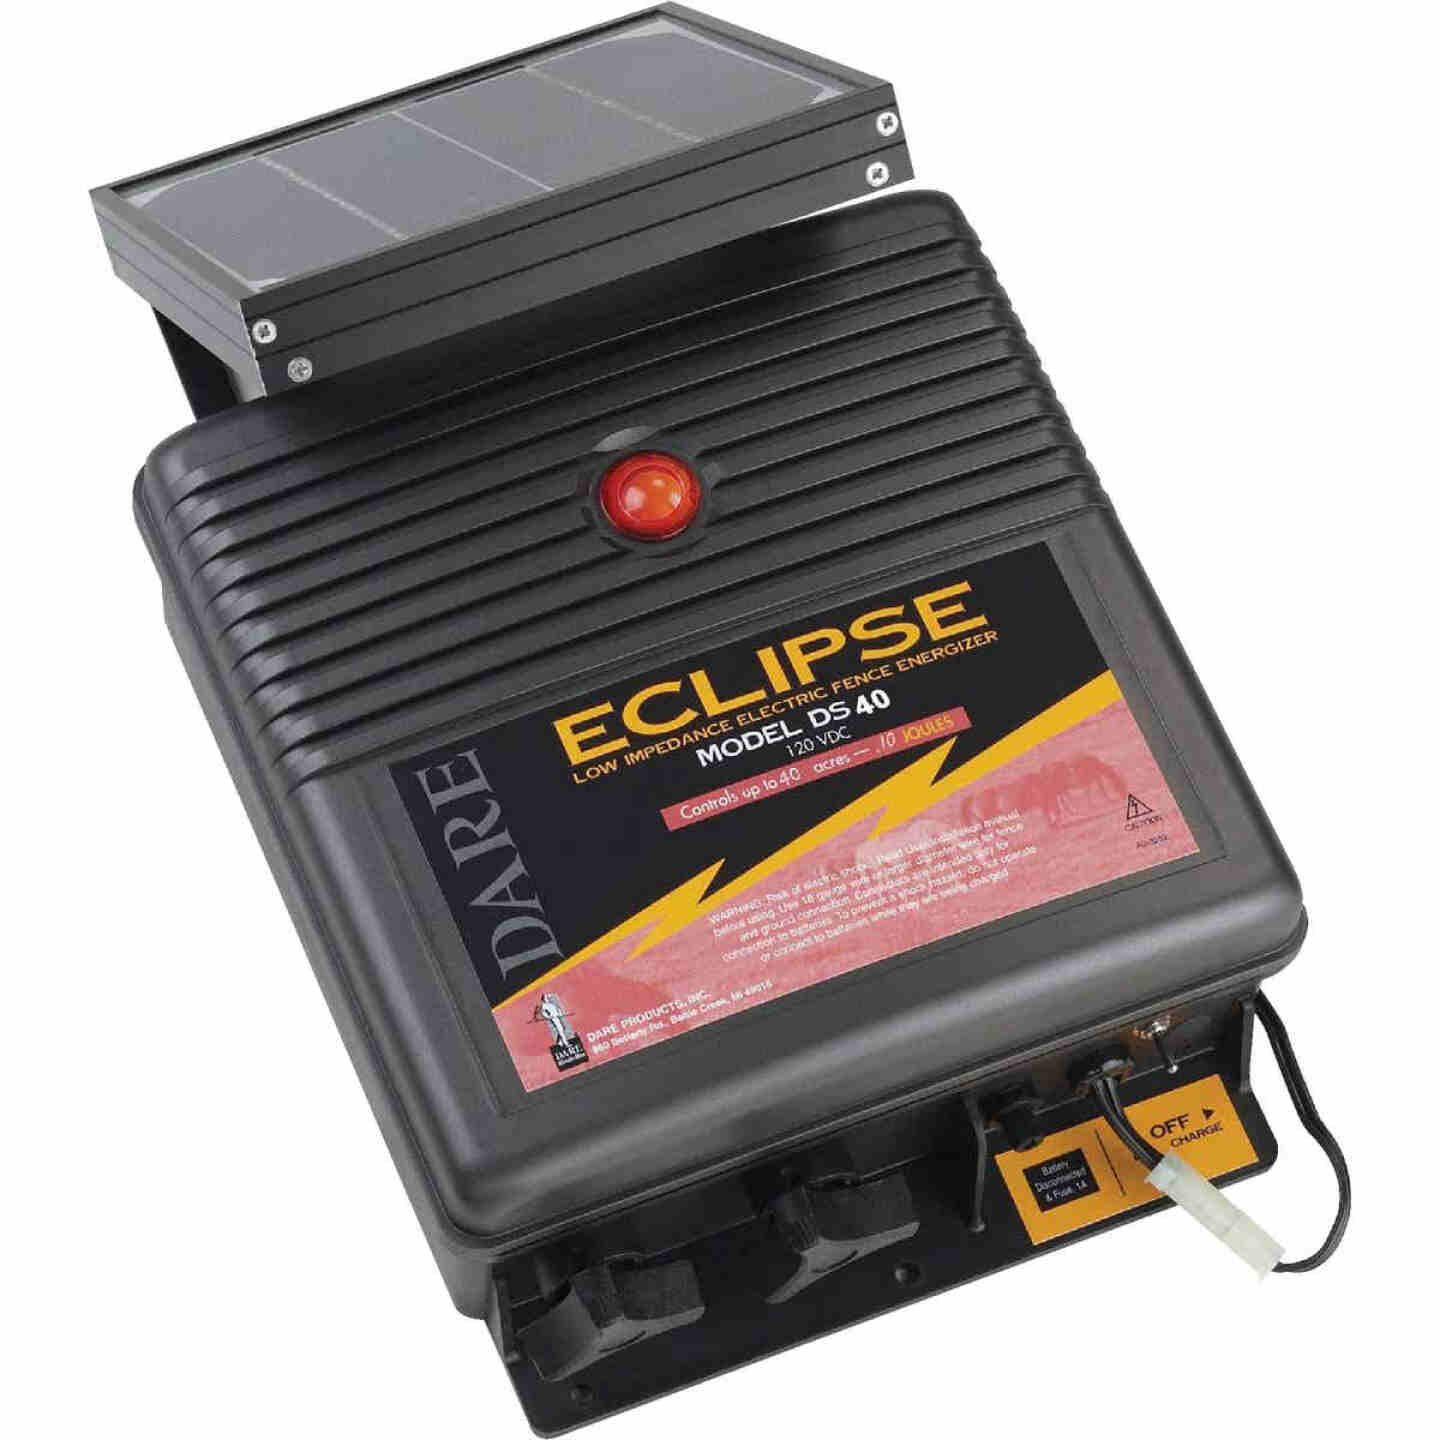 Dare Eclipse 40-Acre Electric Fence Charger Image 1